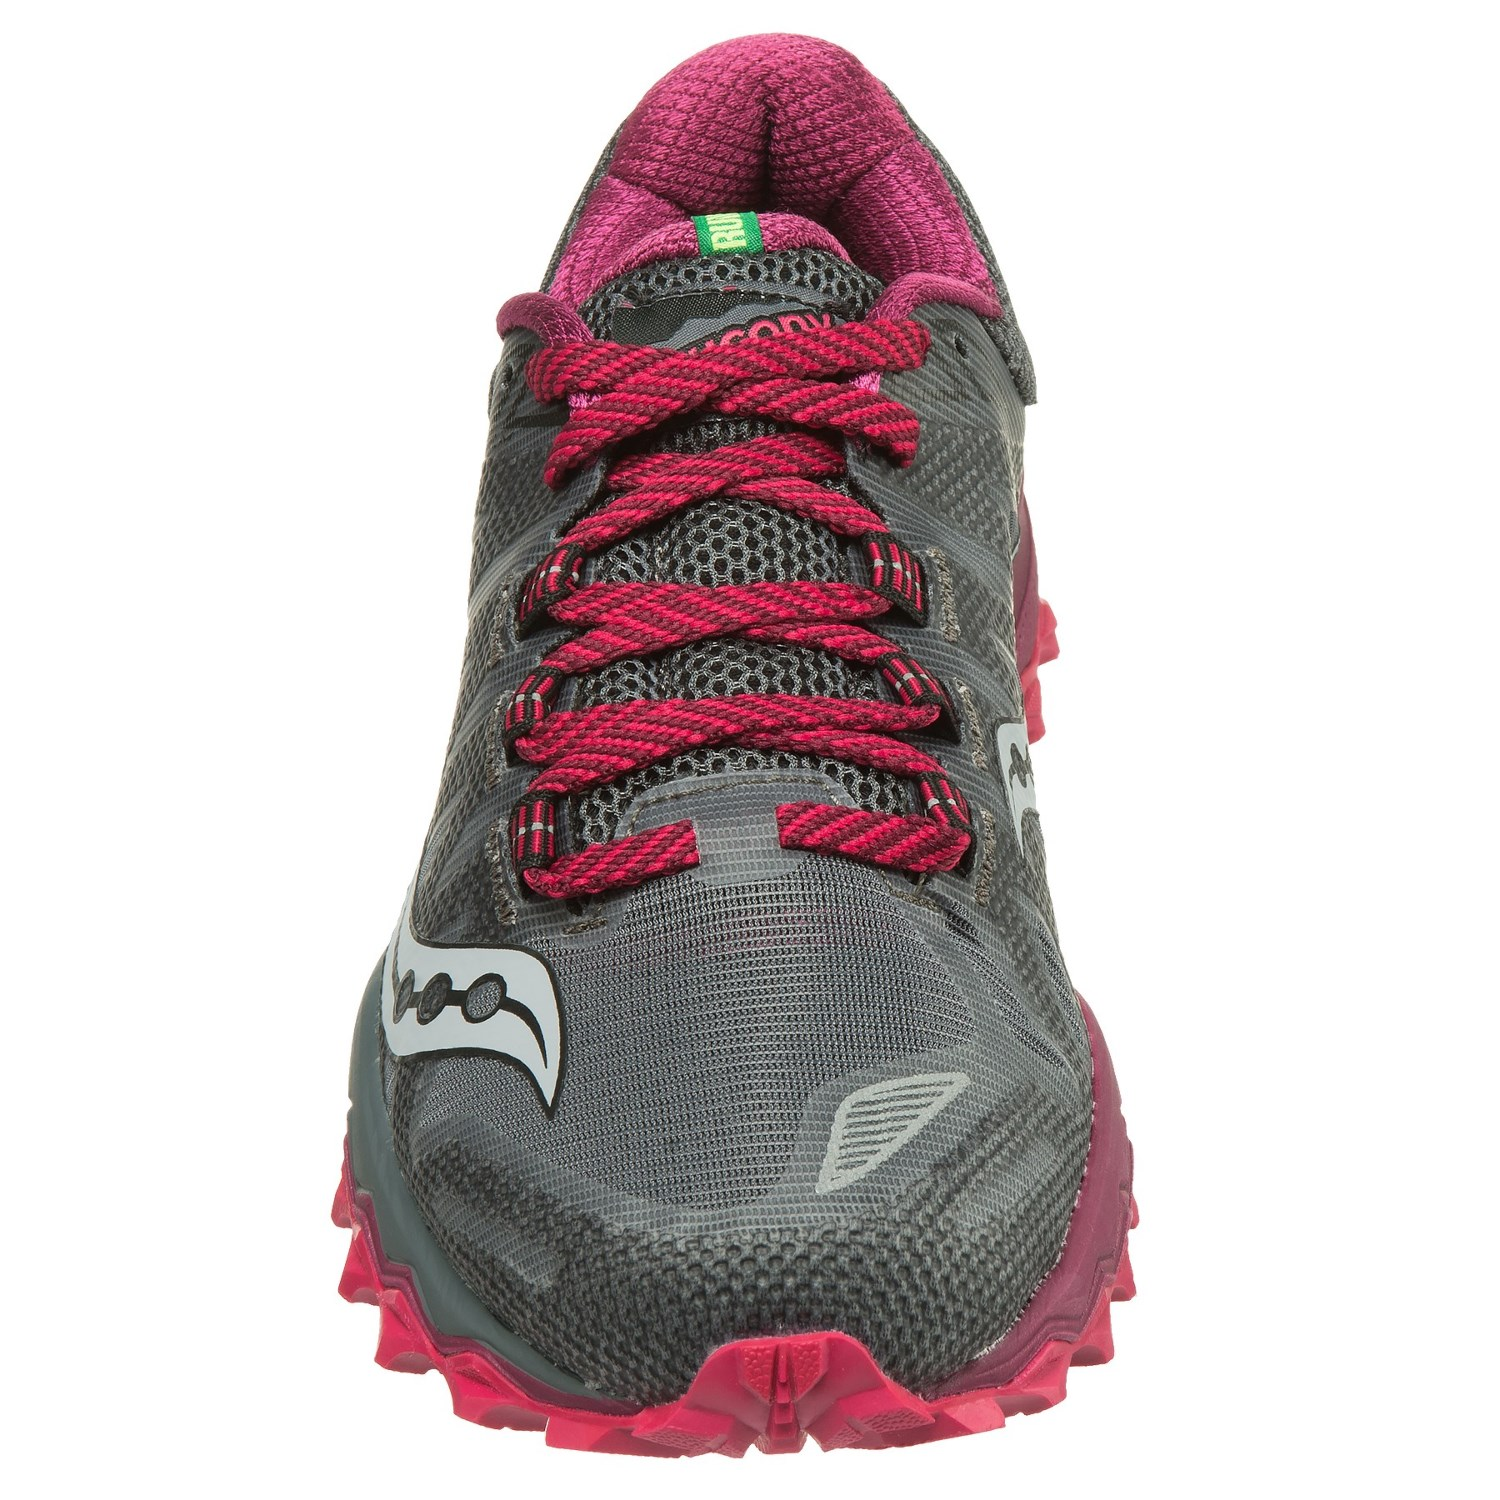 6621ddb850ec Saucony Peregrine 7 Trail Running Shoes (For Women) - Save 81%